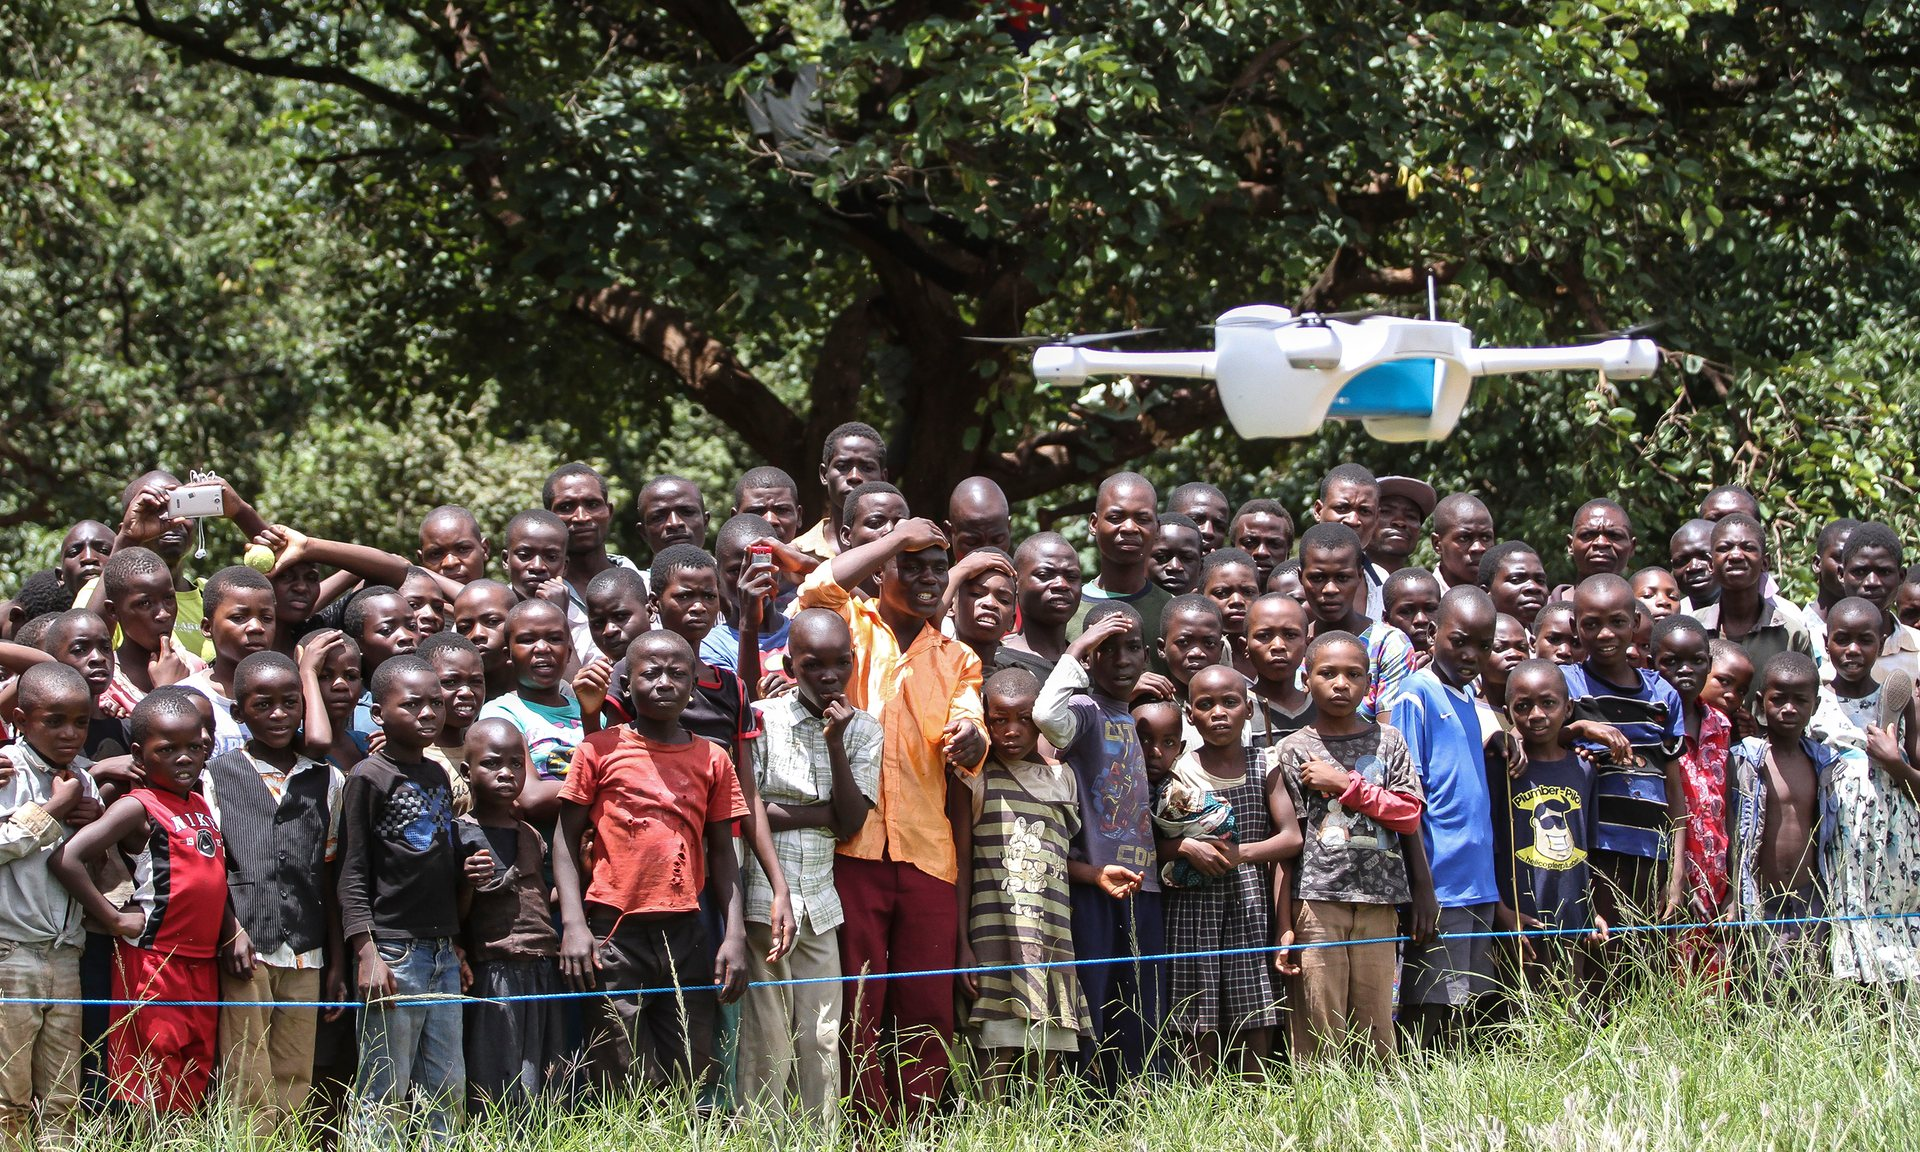 Children look on in astonishment as a drone is put through its paces at a community demonstration in Lilongwe. The Malawian government could use drones to reduce waiting times for medical tests. Photograph: Bodole/Unicef